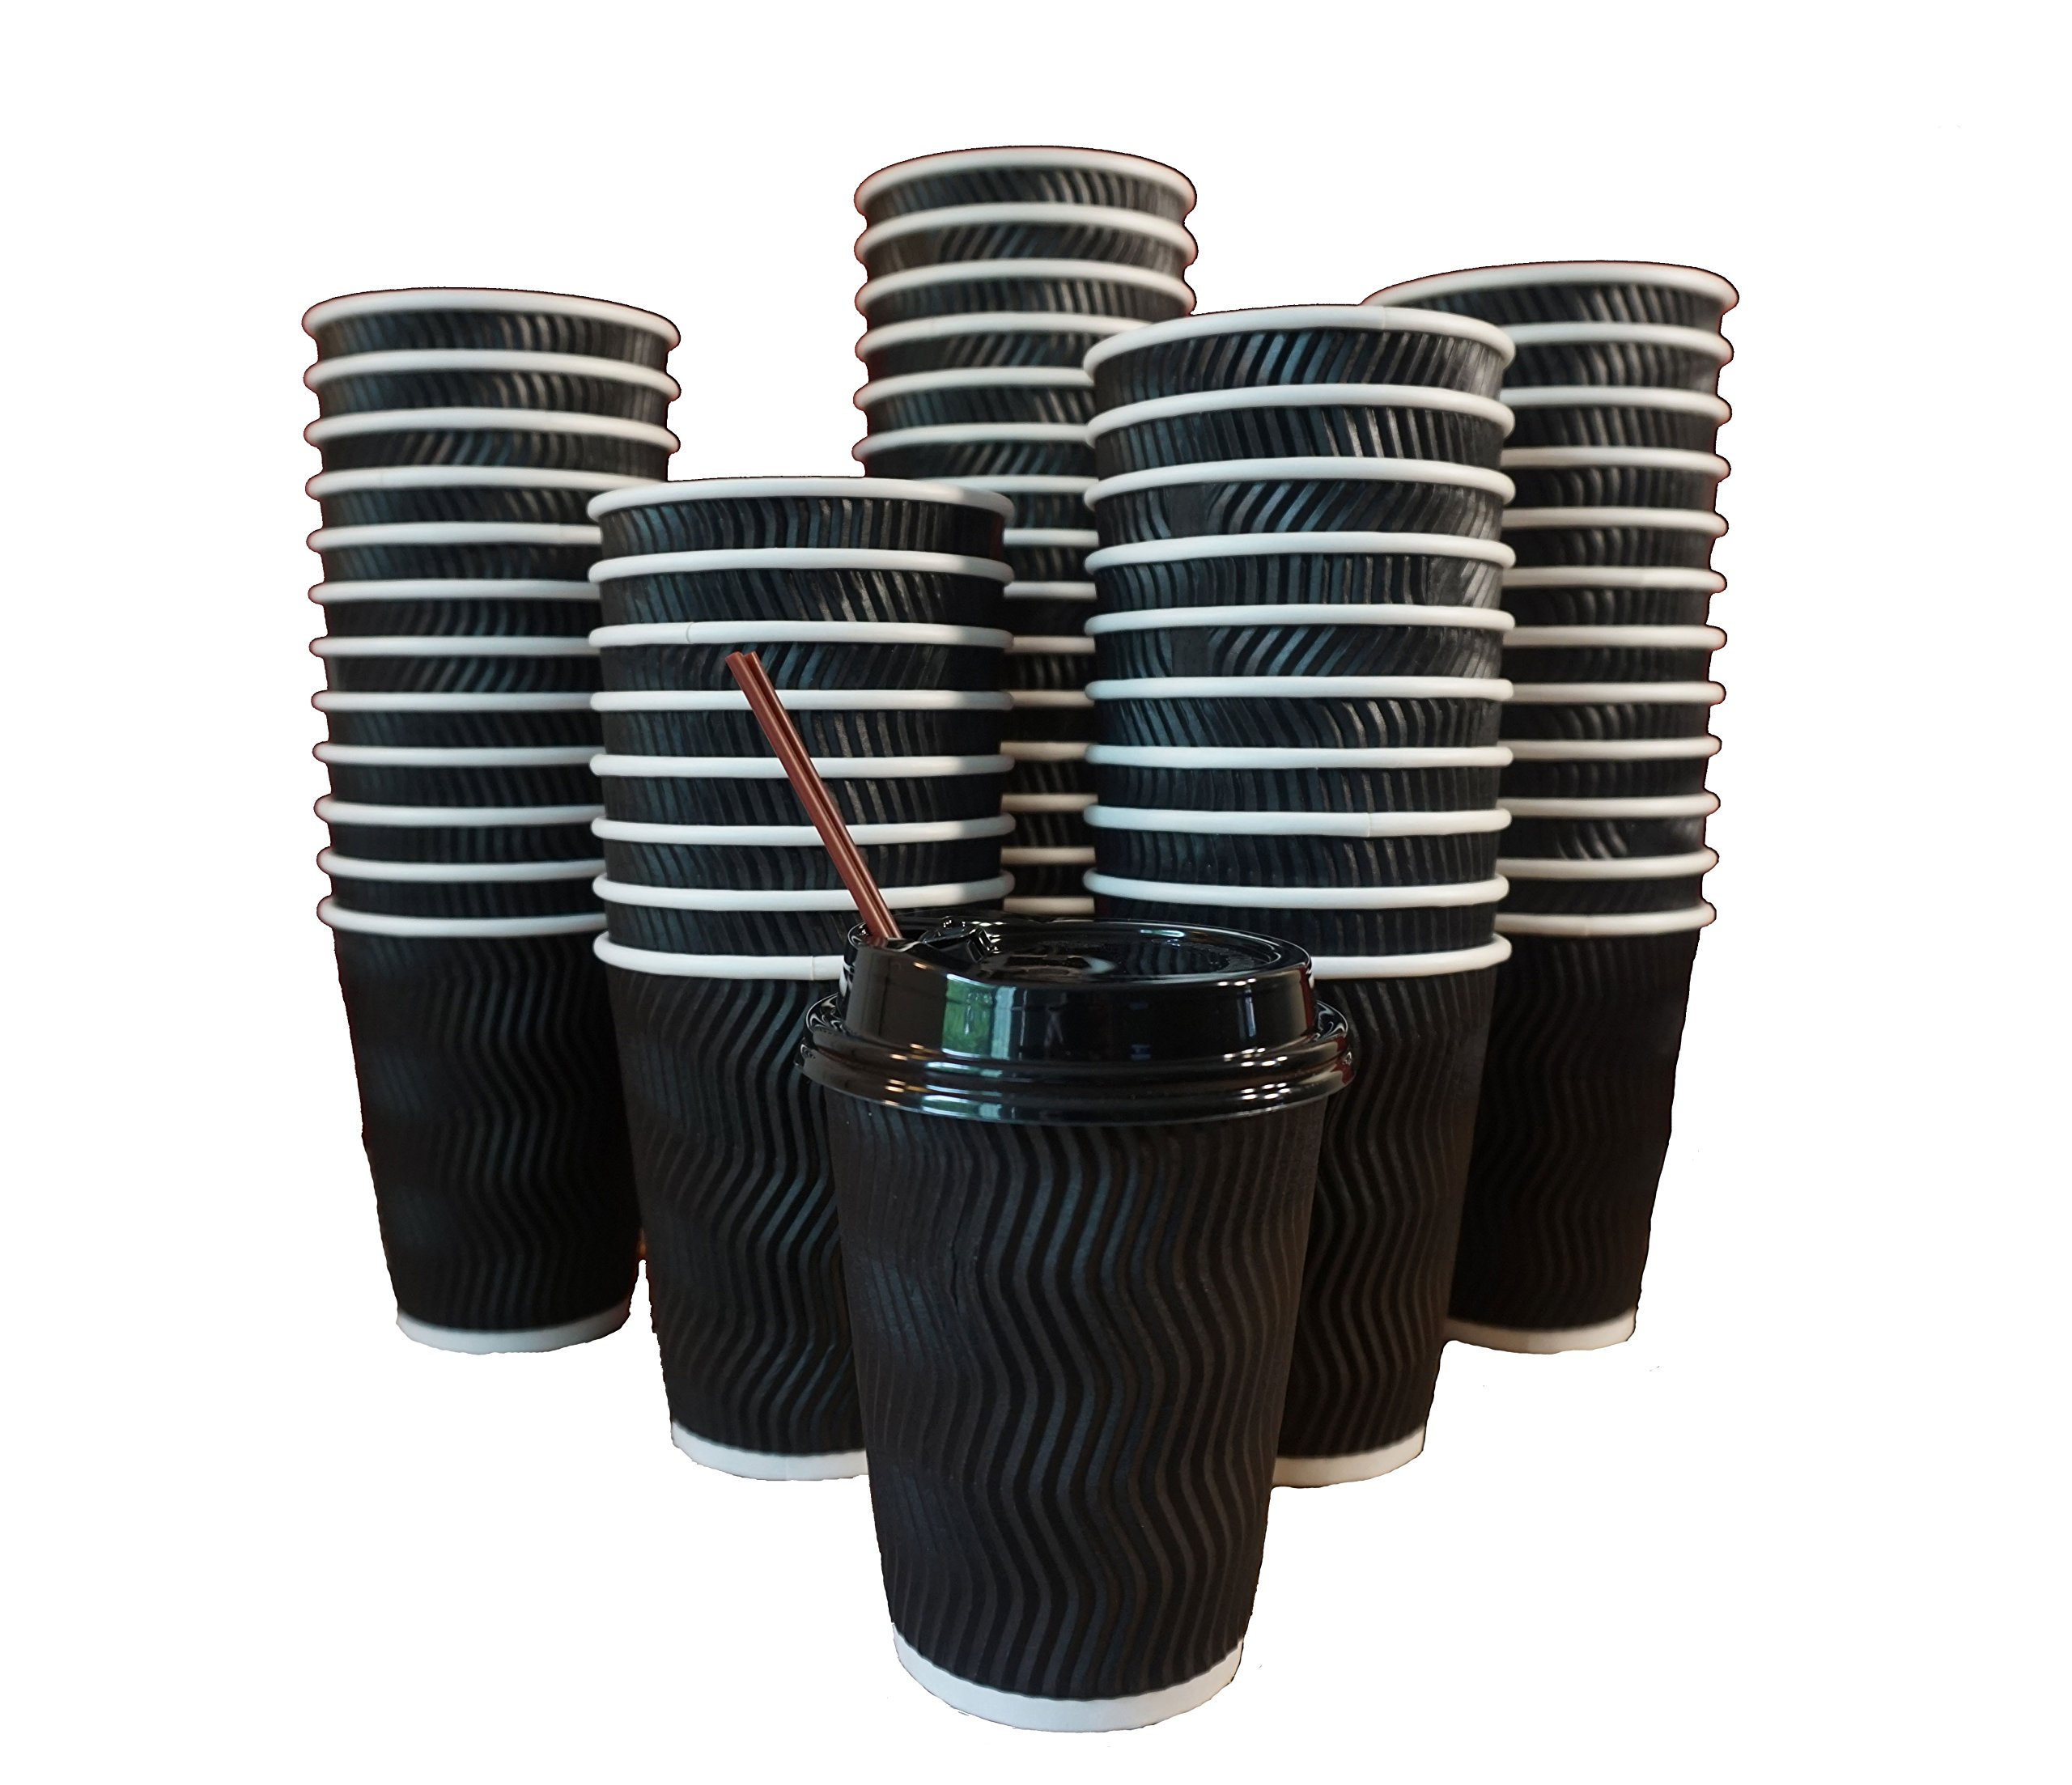 JUMBO 100 Pack | Premium Quality 12 oz Disposable Ripple wall To Go Coffee Cups for Business,Coffee lovers and everyone | Rippled Cup Insulation| Cups, Stir Straws, Lids included and NO NEED sleeve